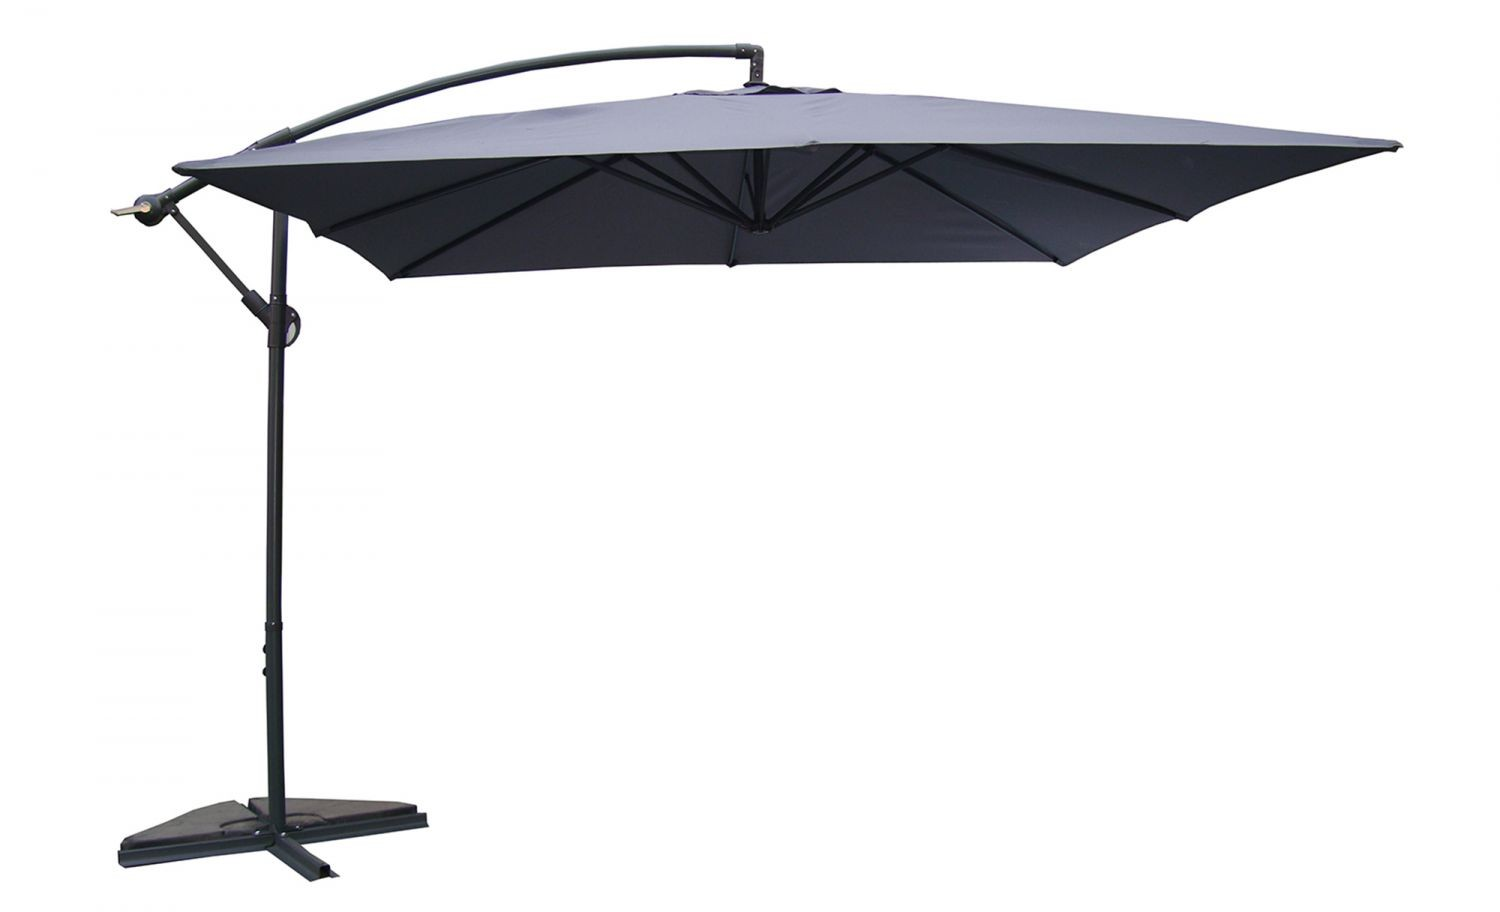 umloti gris parasol d port 3x3 m parasols parasols. Black Bedroom Furniture Sets. Home Design Ideas